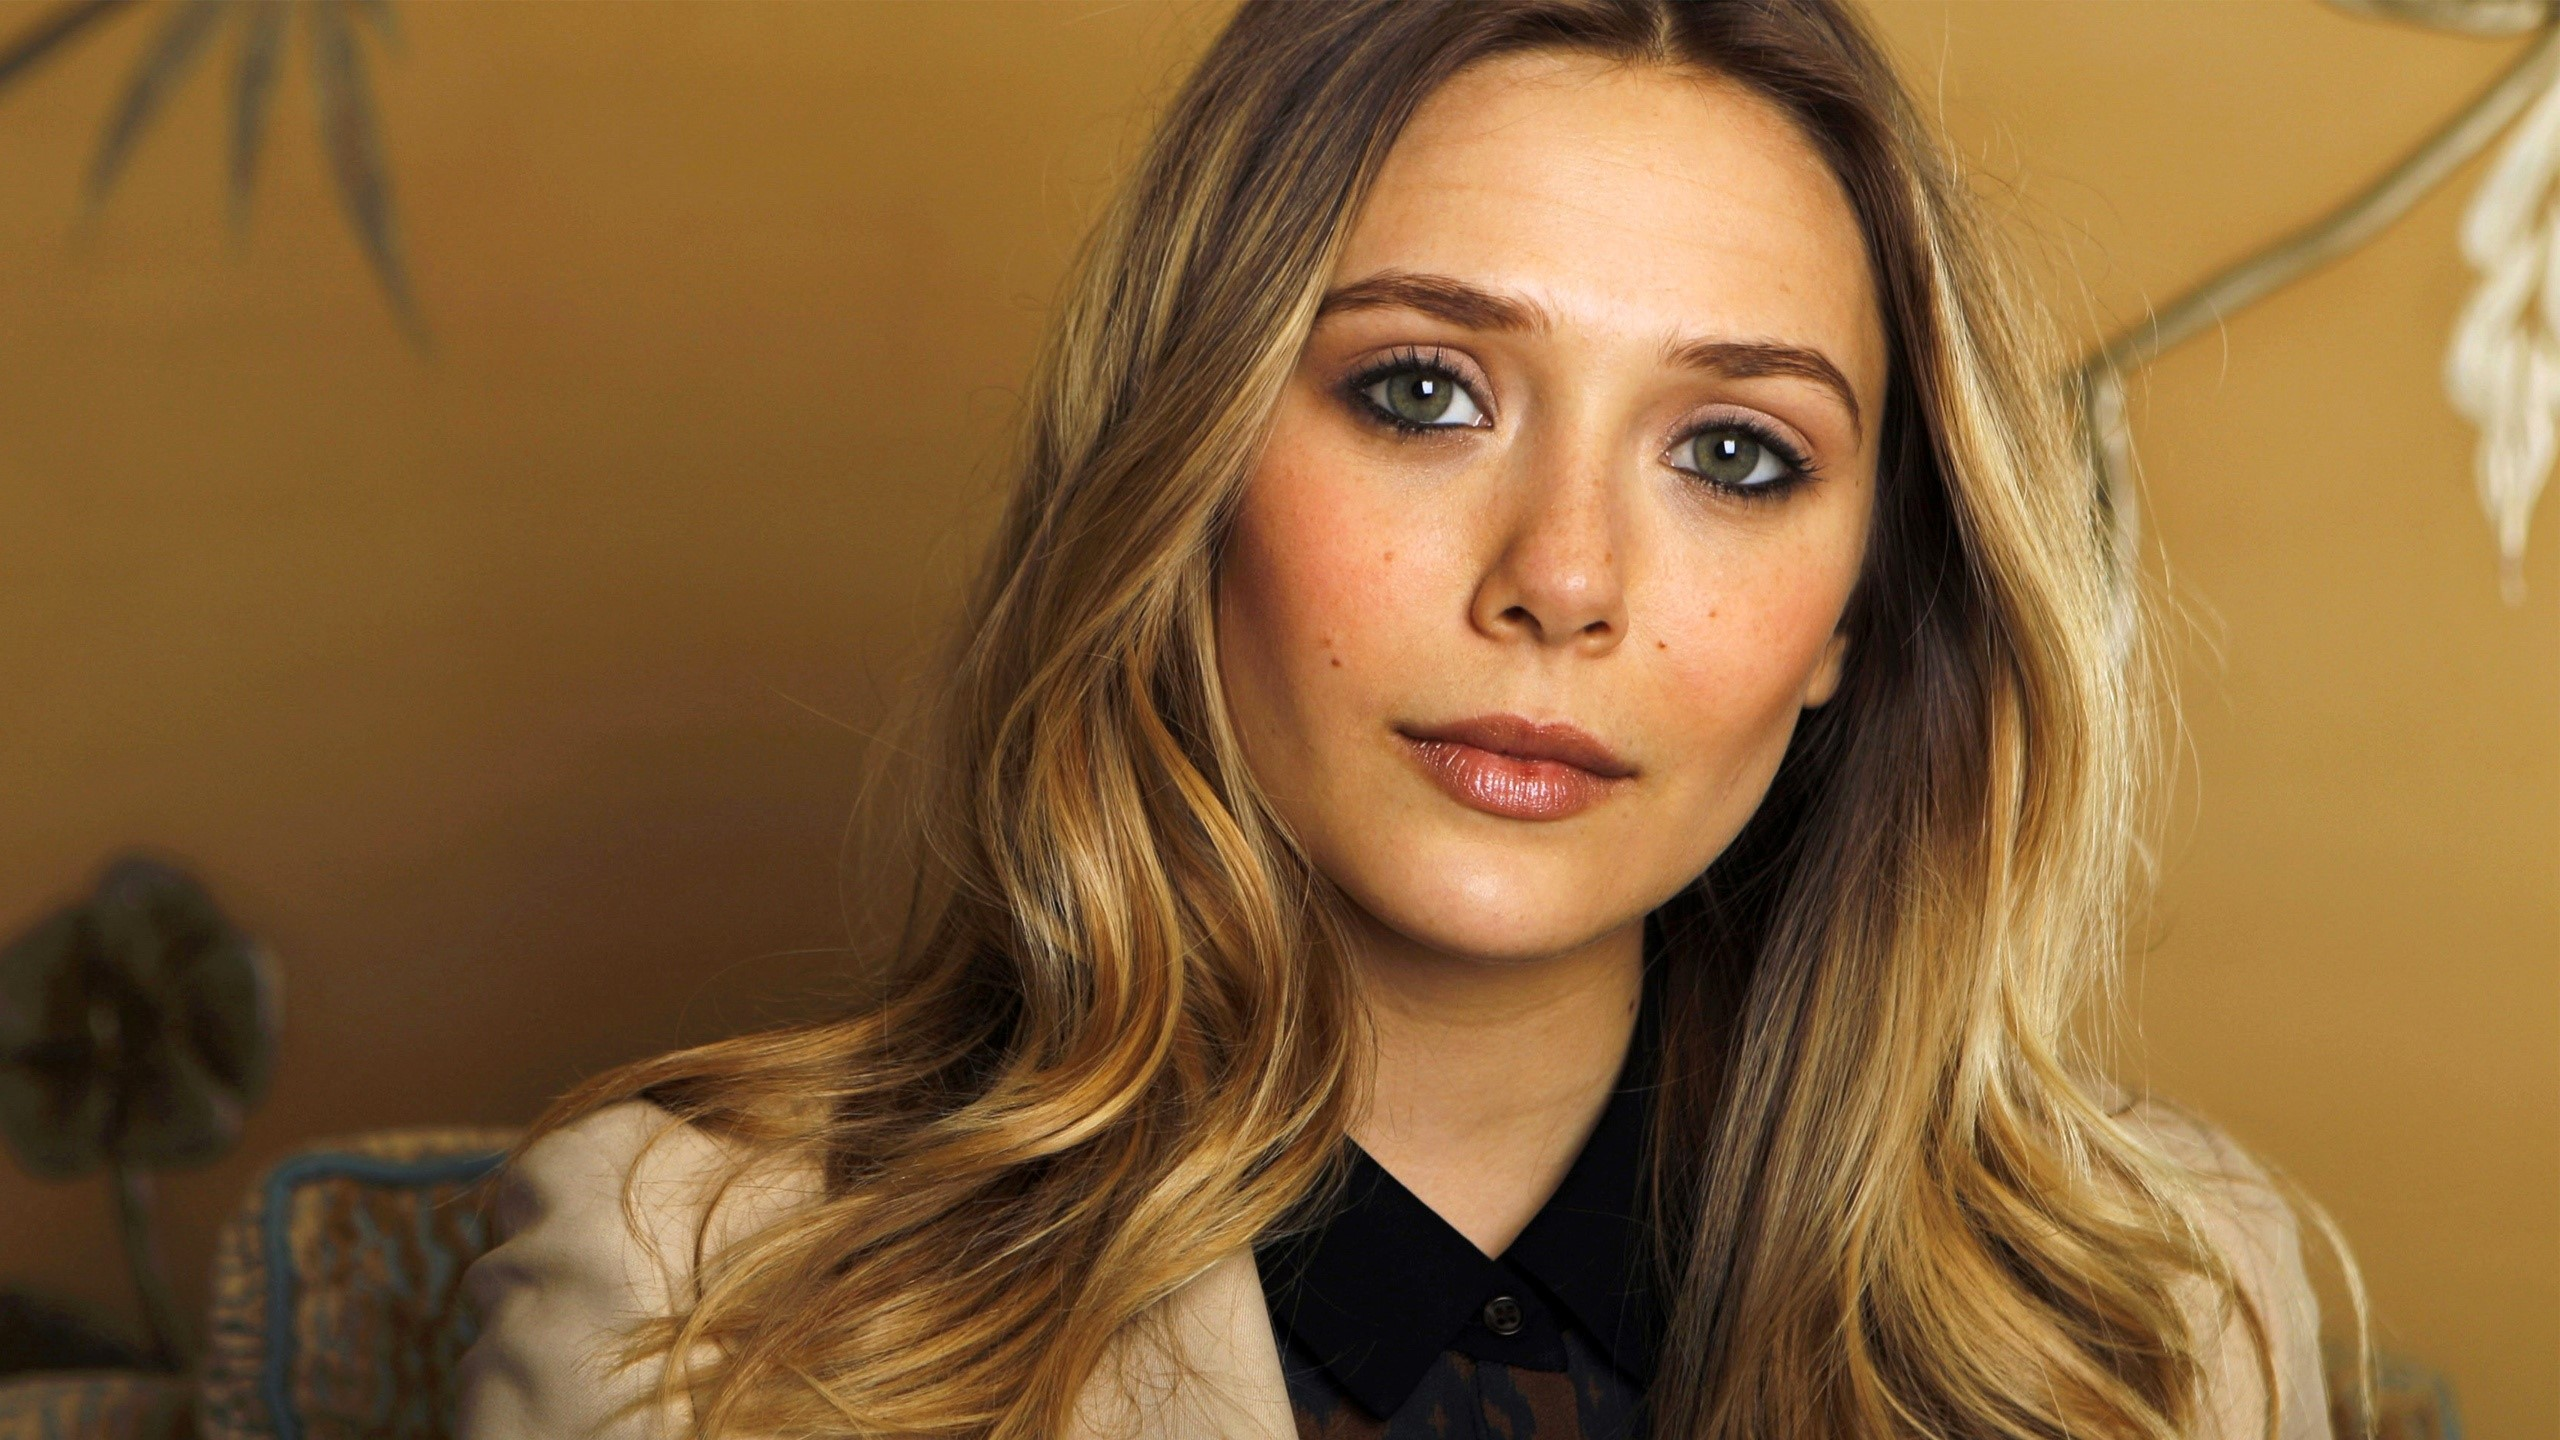 Wallpaper Elizabeth Olsen in a golden room